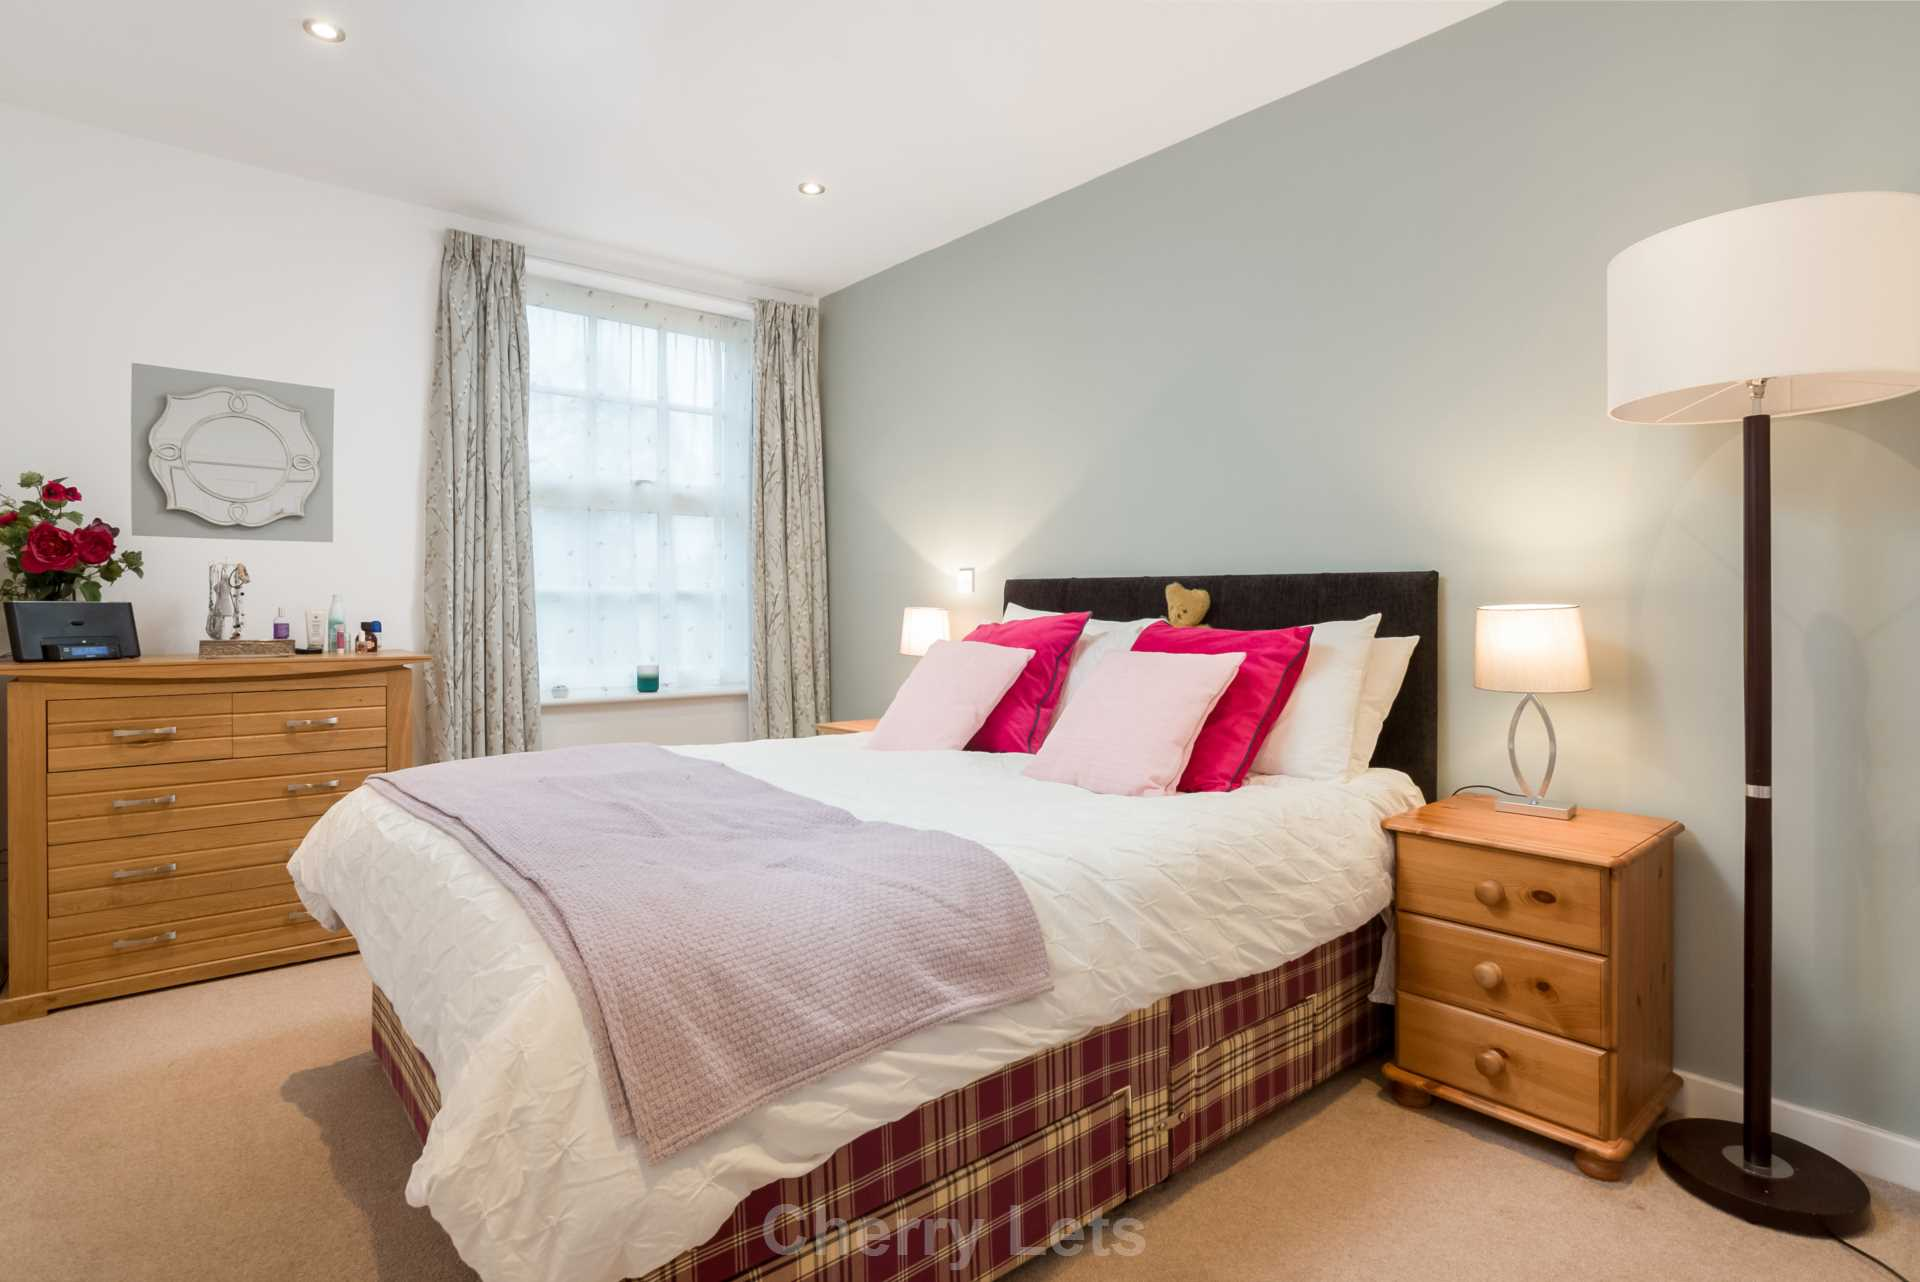 2 bed apartment to rent in Astrop Grange, Kings Sutton, OX17 5